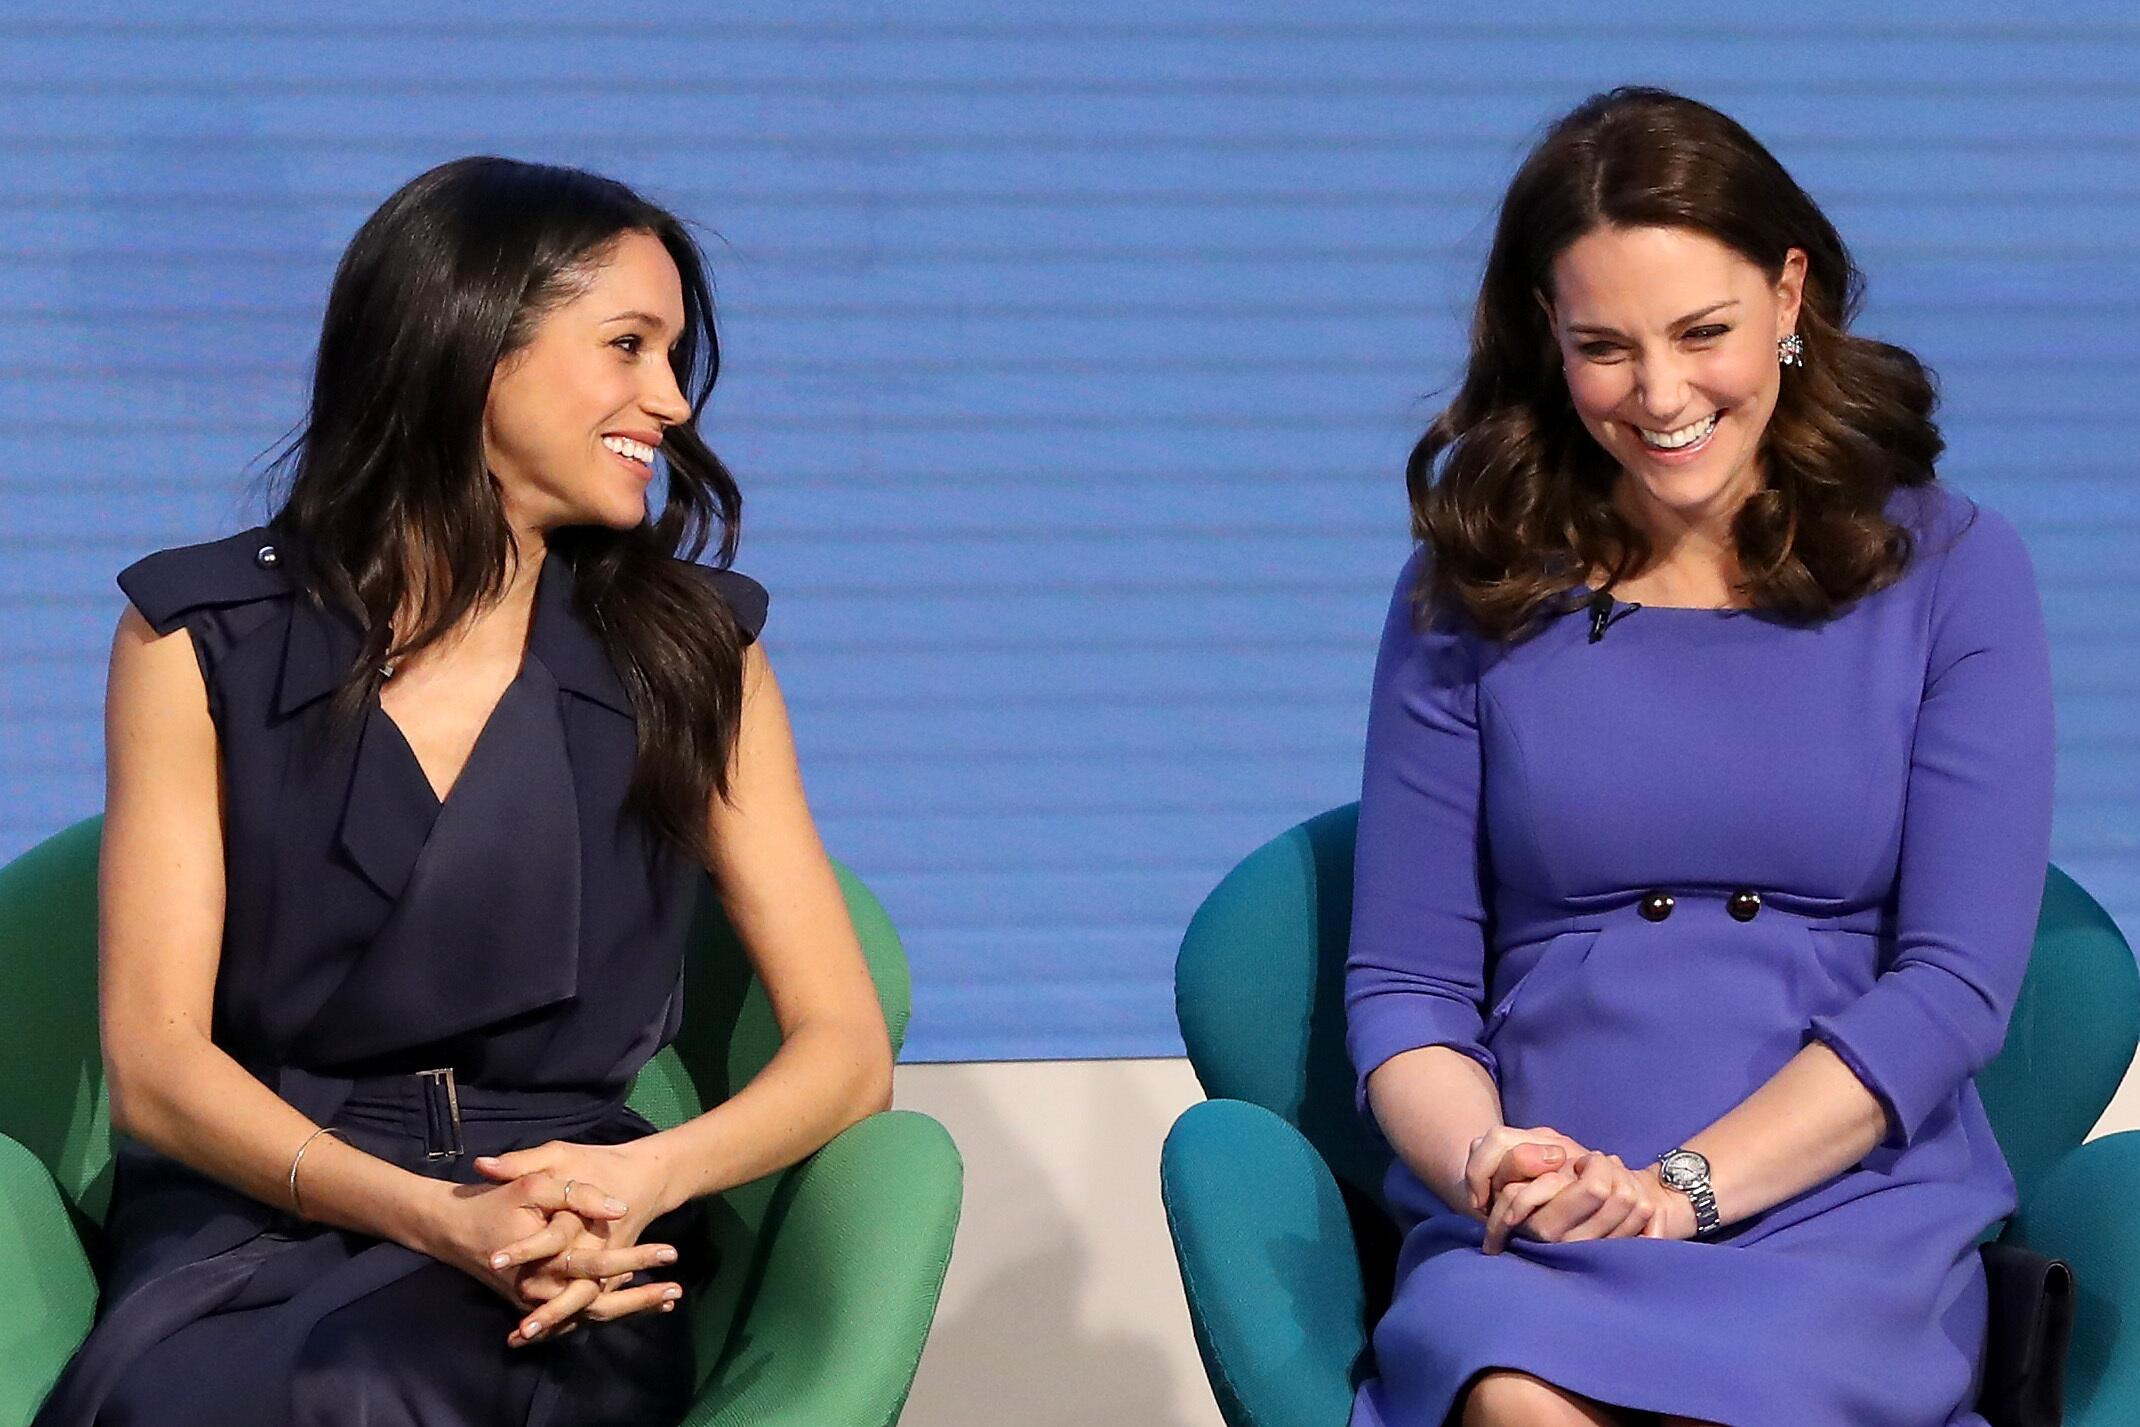 Bild zu Meghan Markle, Herzogin Kate, Prinz Harry, Verlobte, Prinz William, Royals